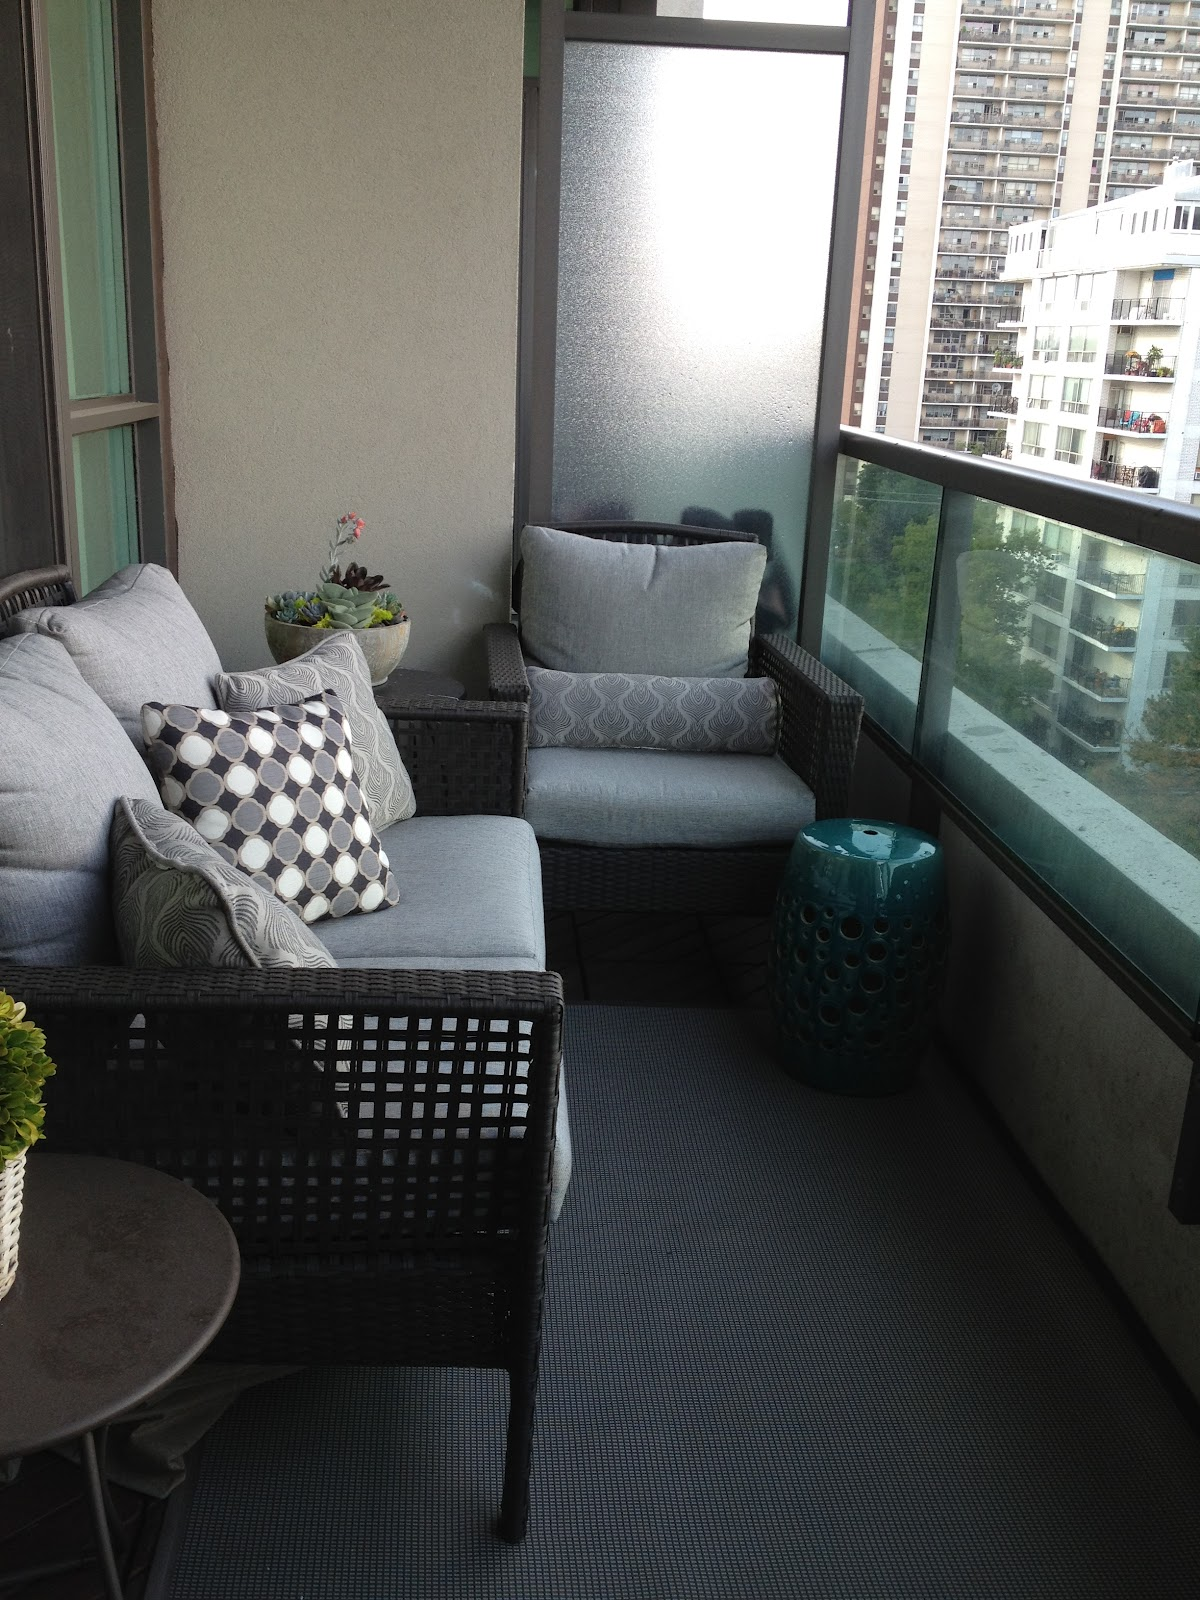 Small Apartment Balcony Garden Ideas: Small Balcony Furniture Option